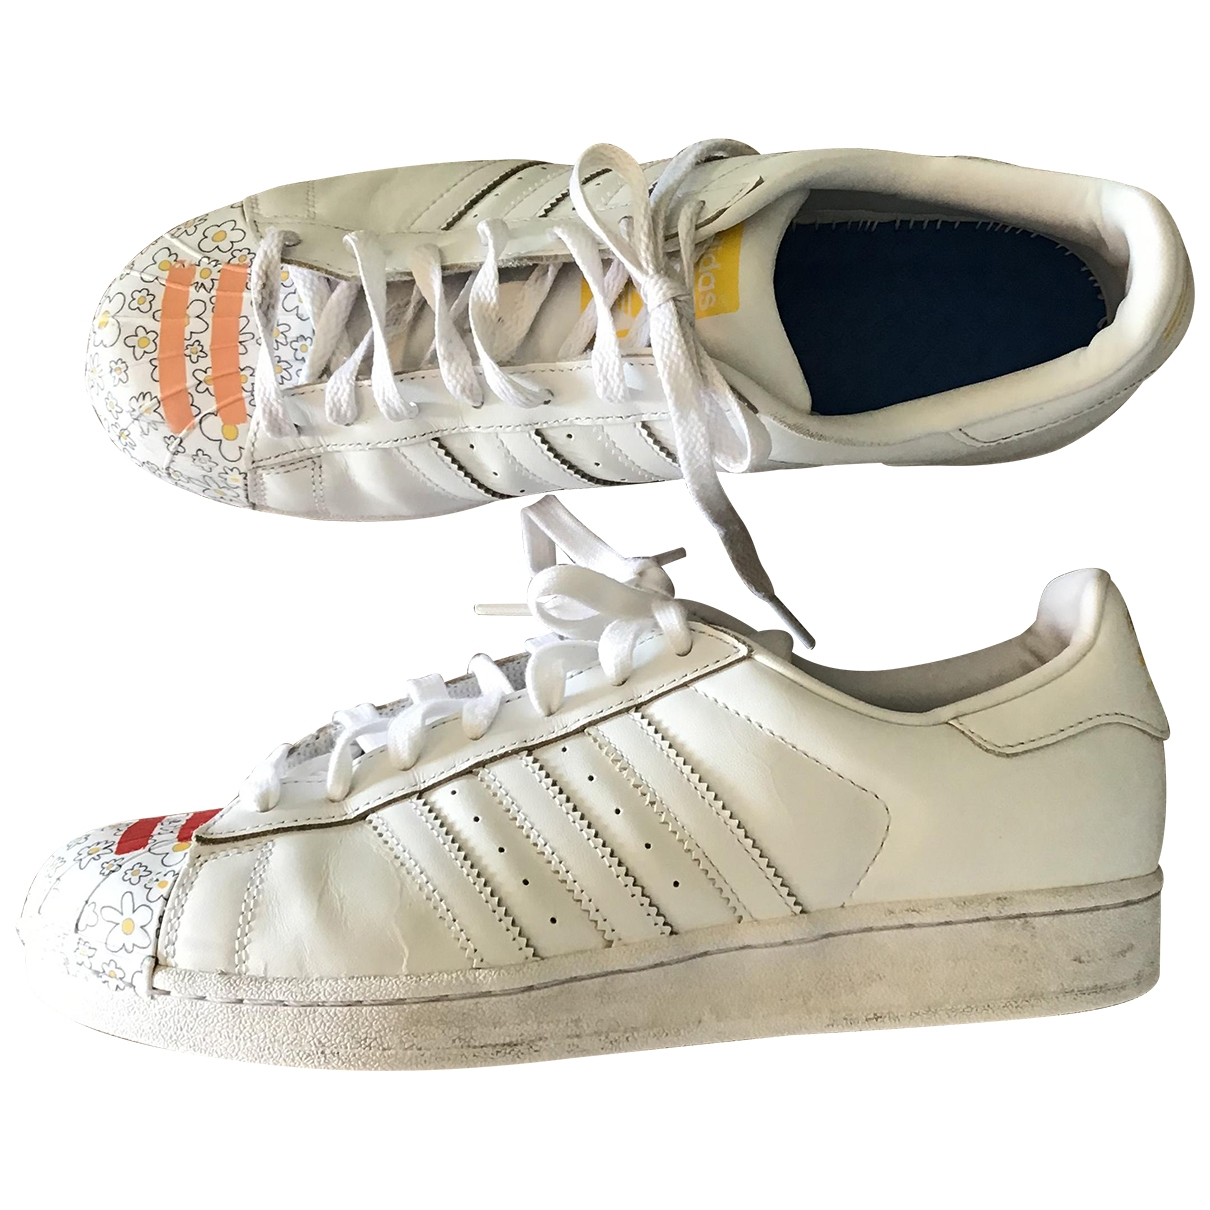 Adidas Superstar White Leather Trainers for Men 10 UK